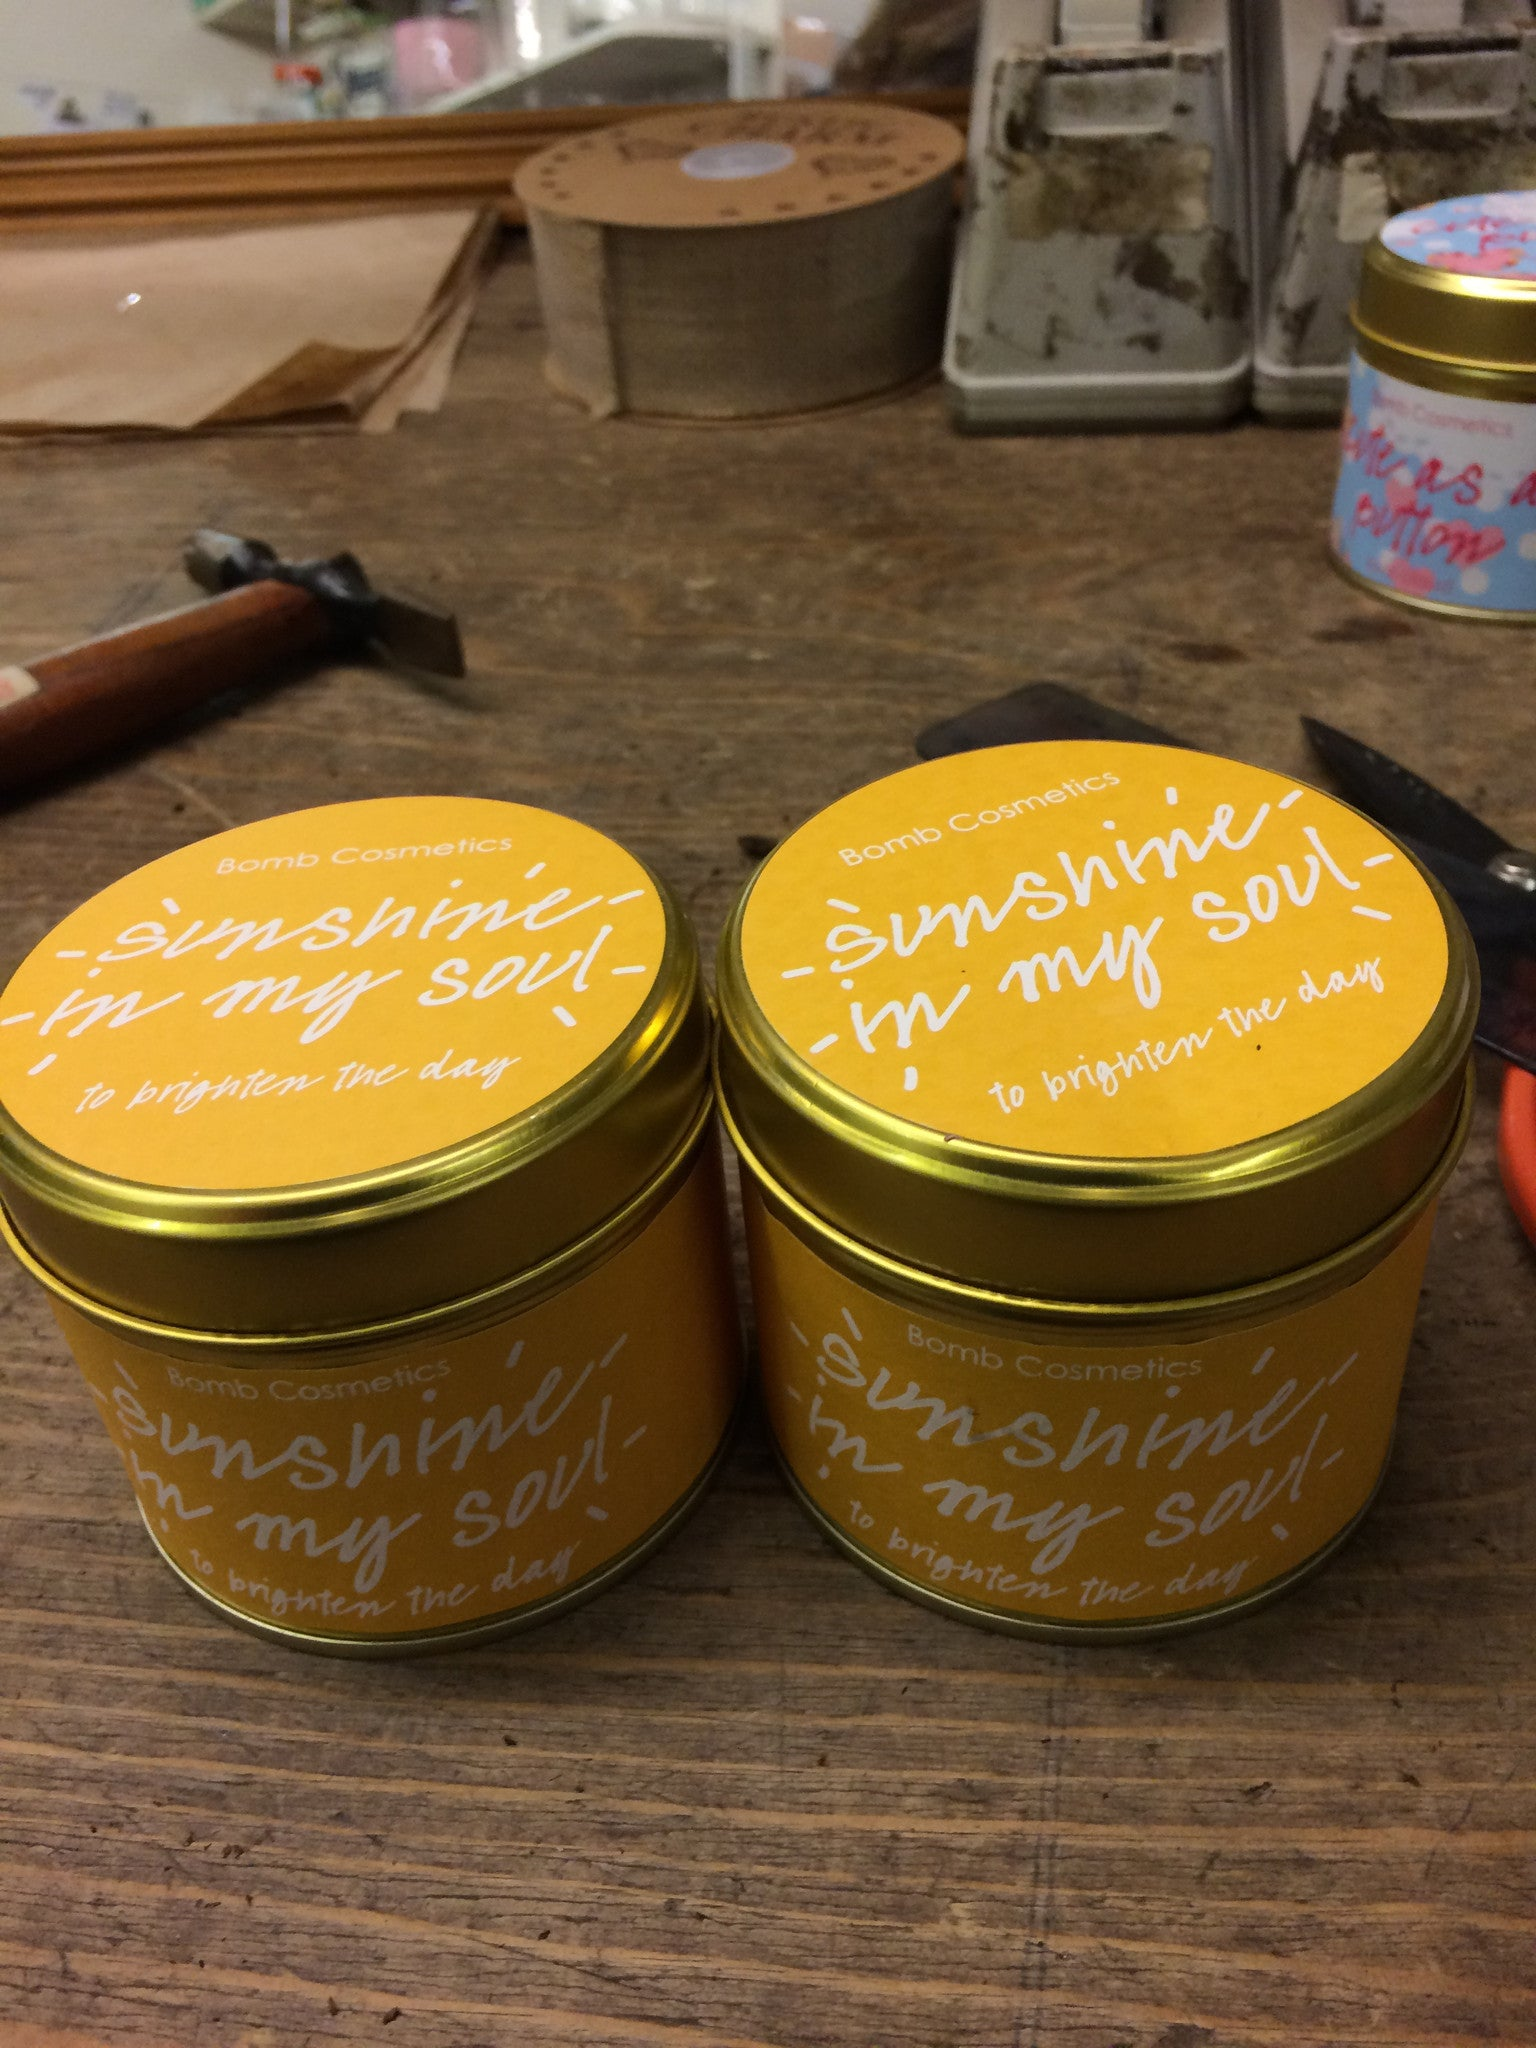 Sunshine in my Soul bomb cosmetics candles, part of our gifts collection.